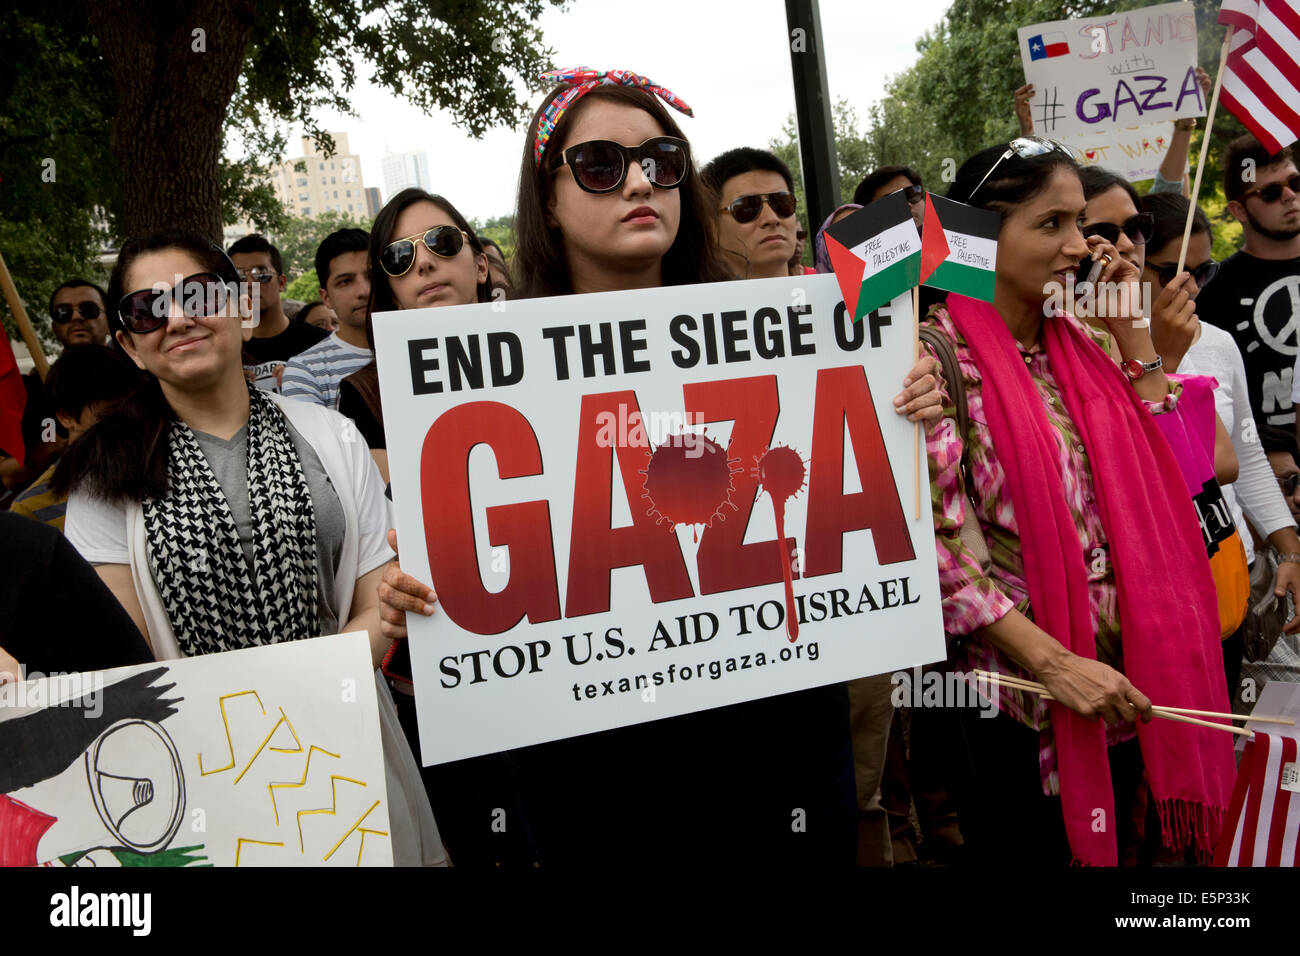 Rally at Texas Capitol protesting Israel's siege of Gaza and the U.S support and funding of Israel. - Stock Image